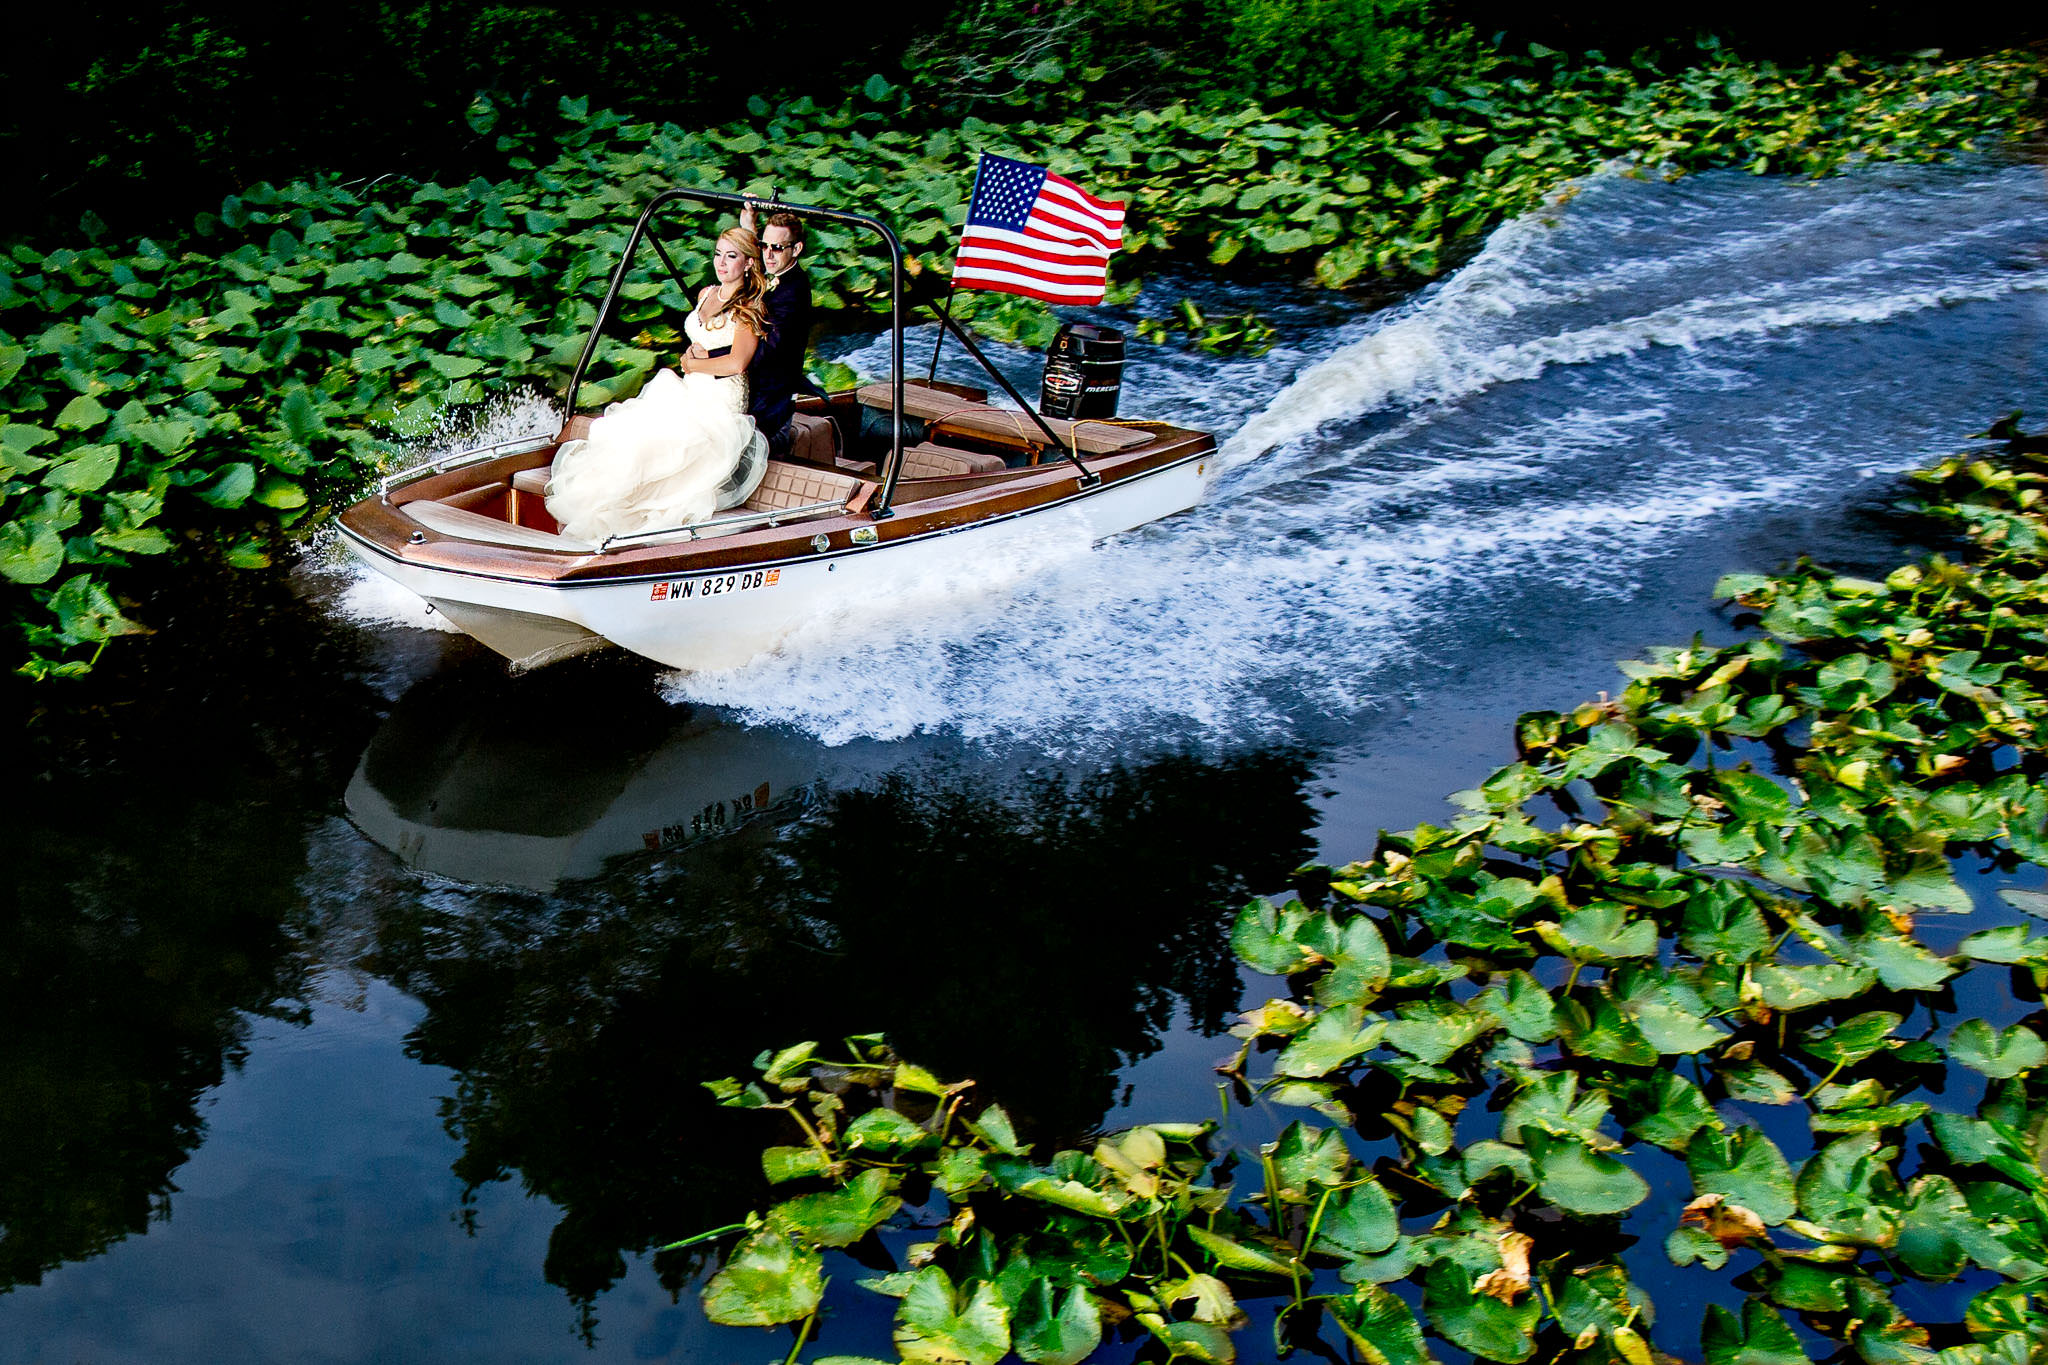 Bride and Groom full speed on boat in canal at Washington wedding